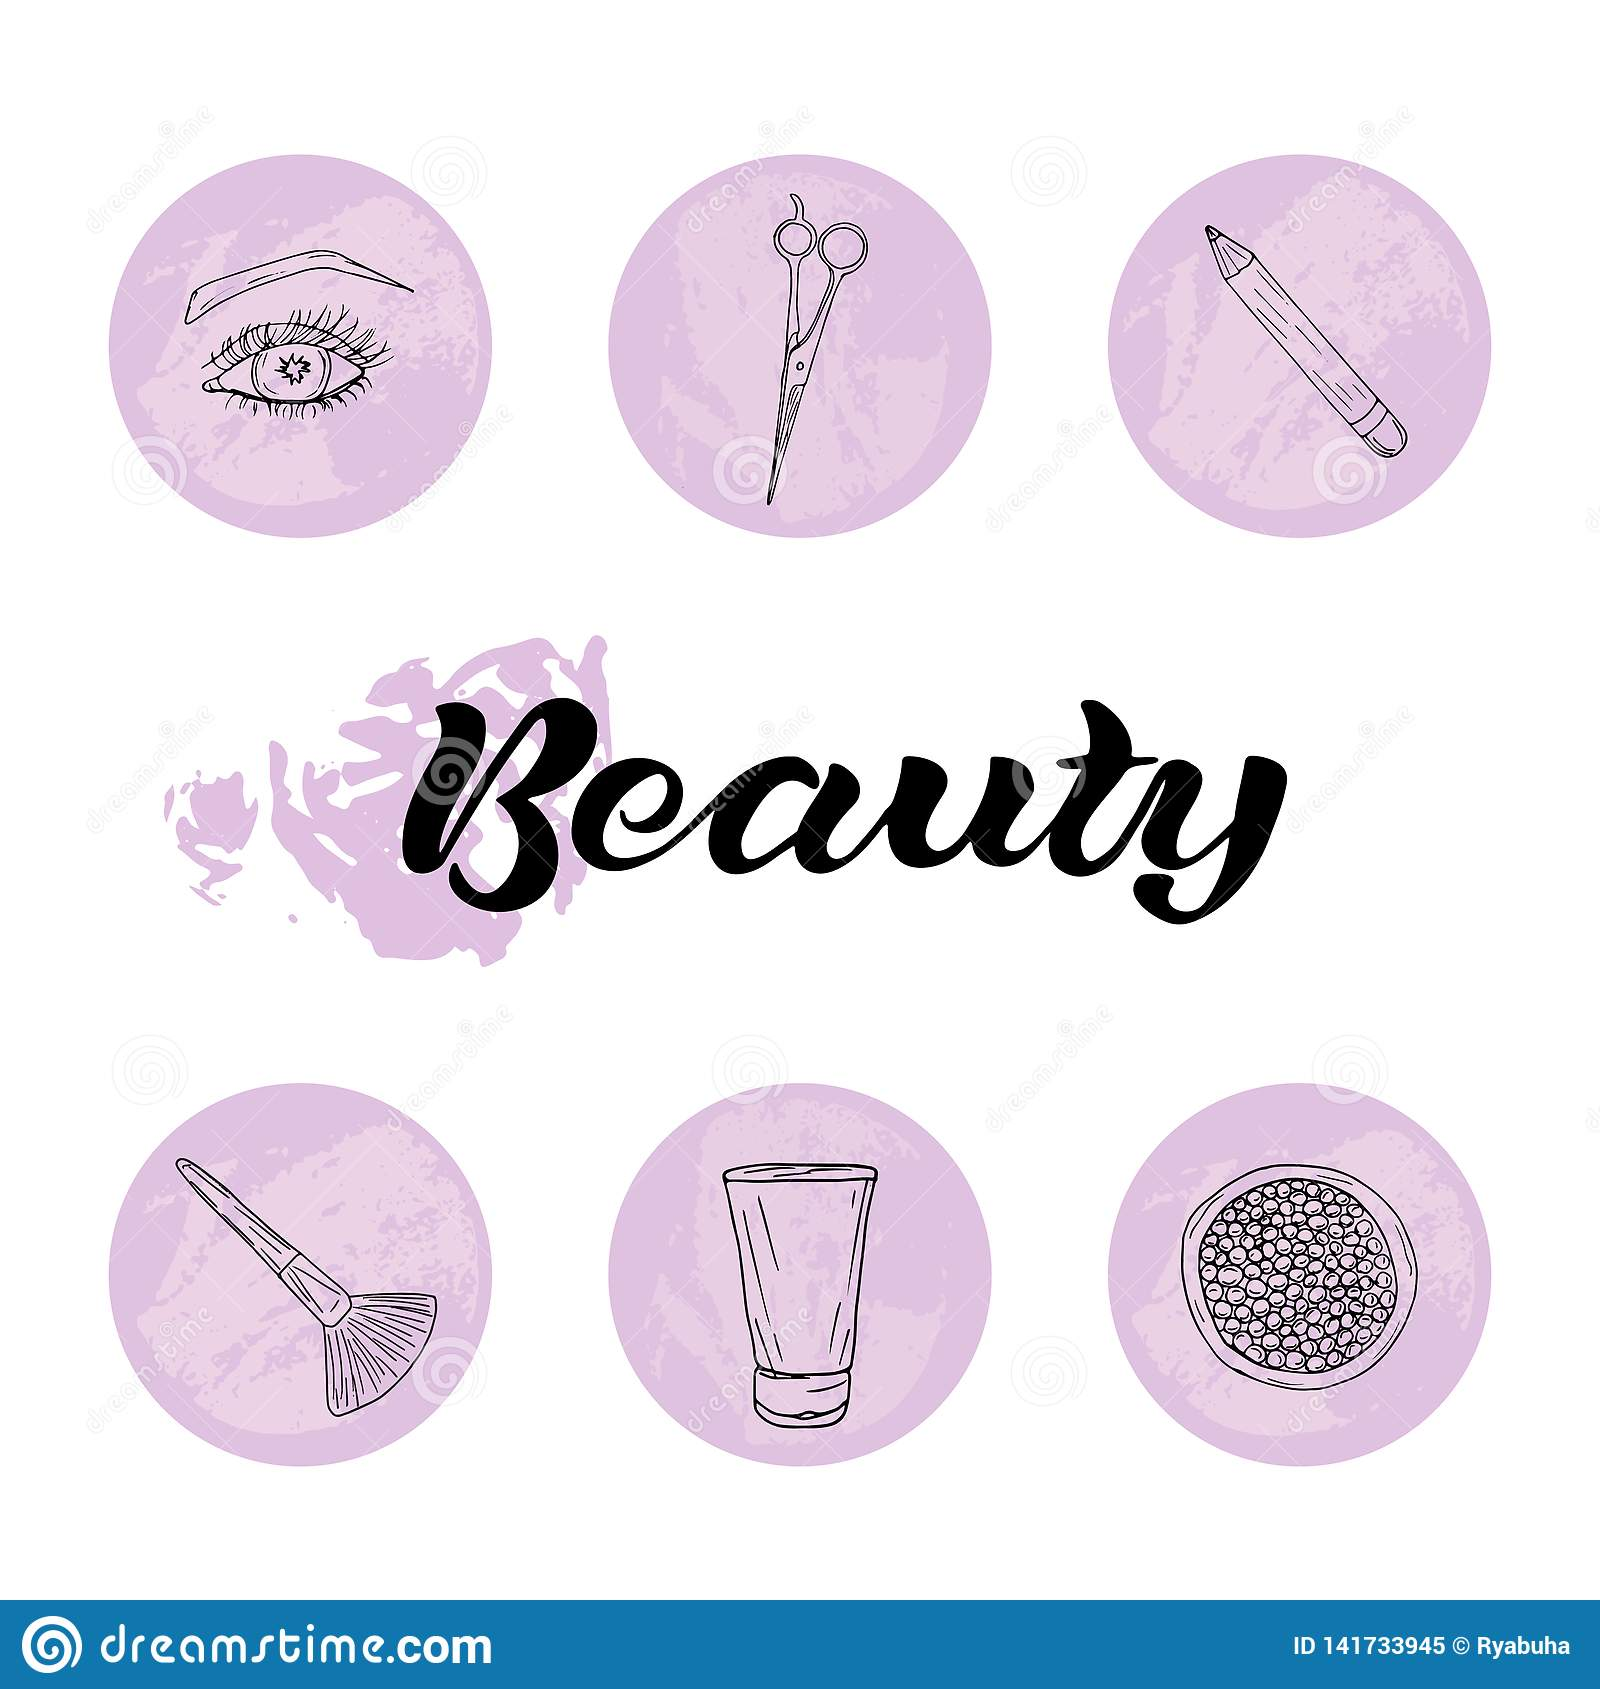 Beauty and body care icons set.